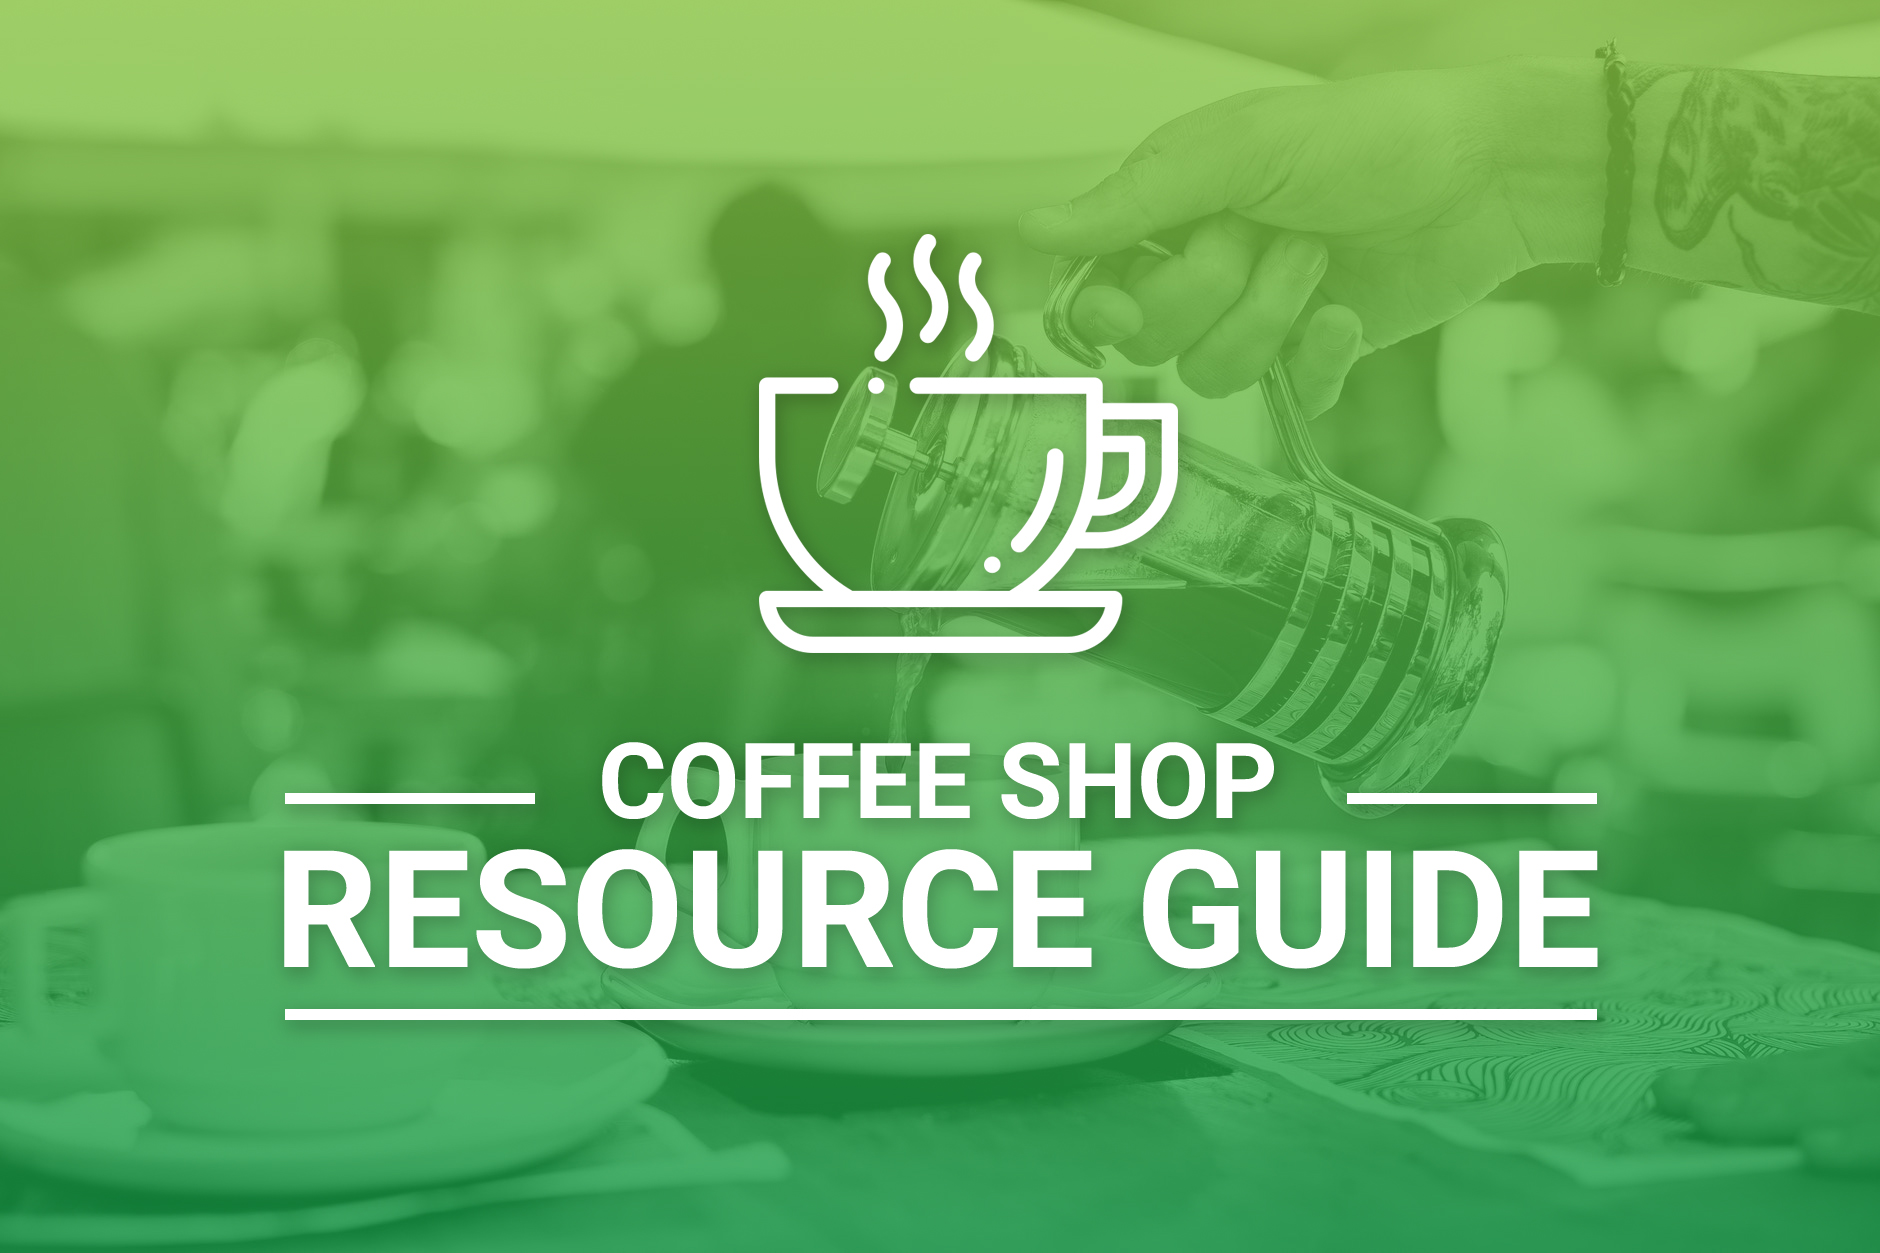 Coffee Shop Resource Guide